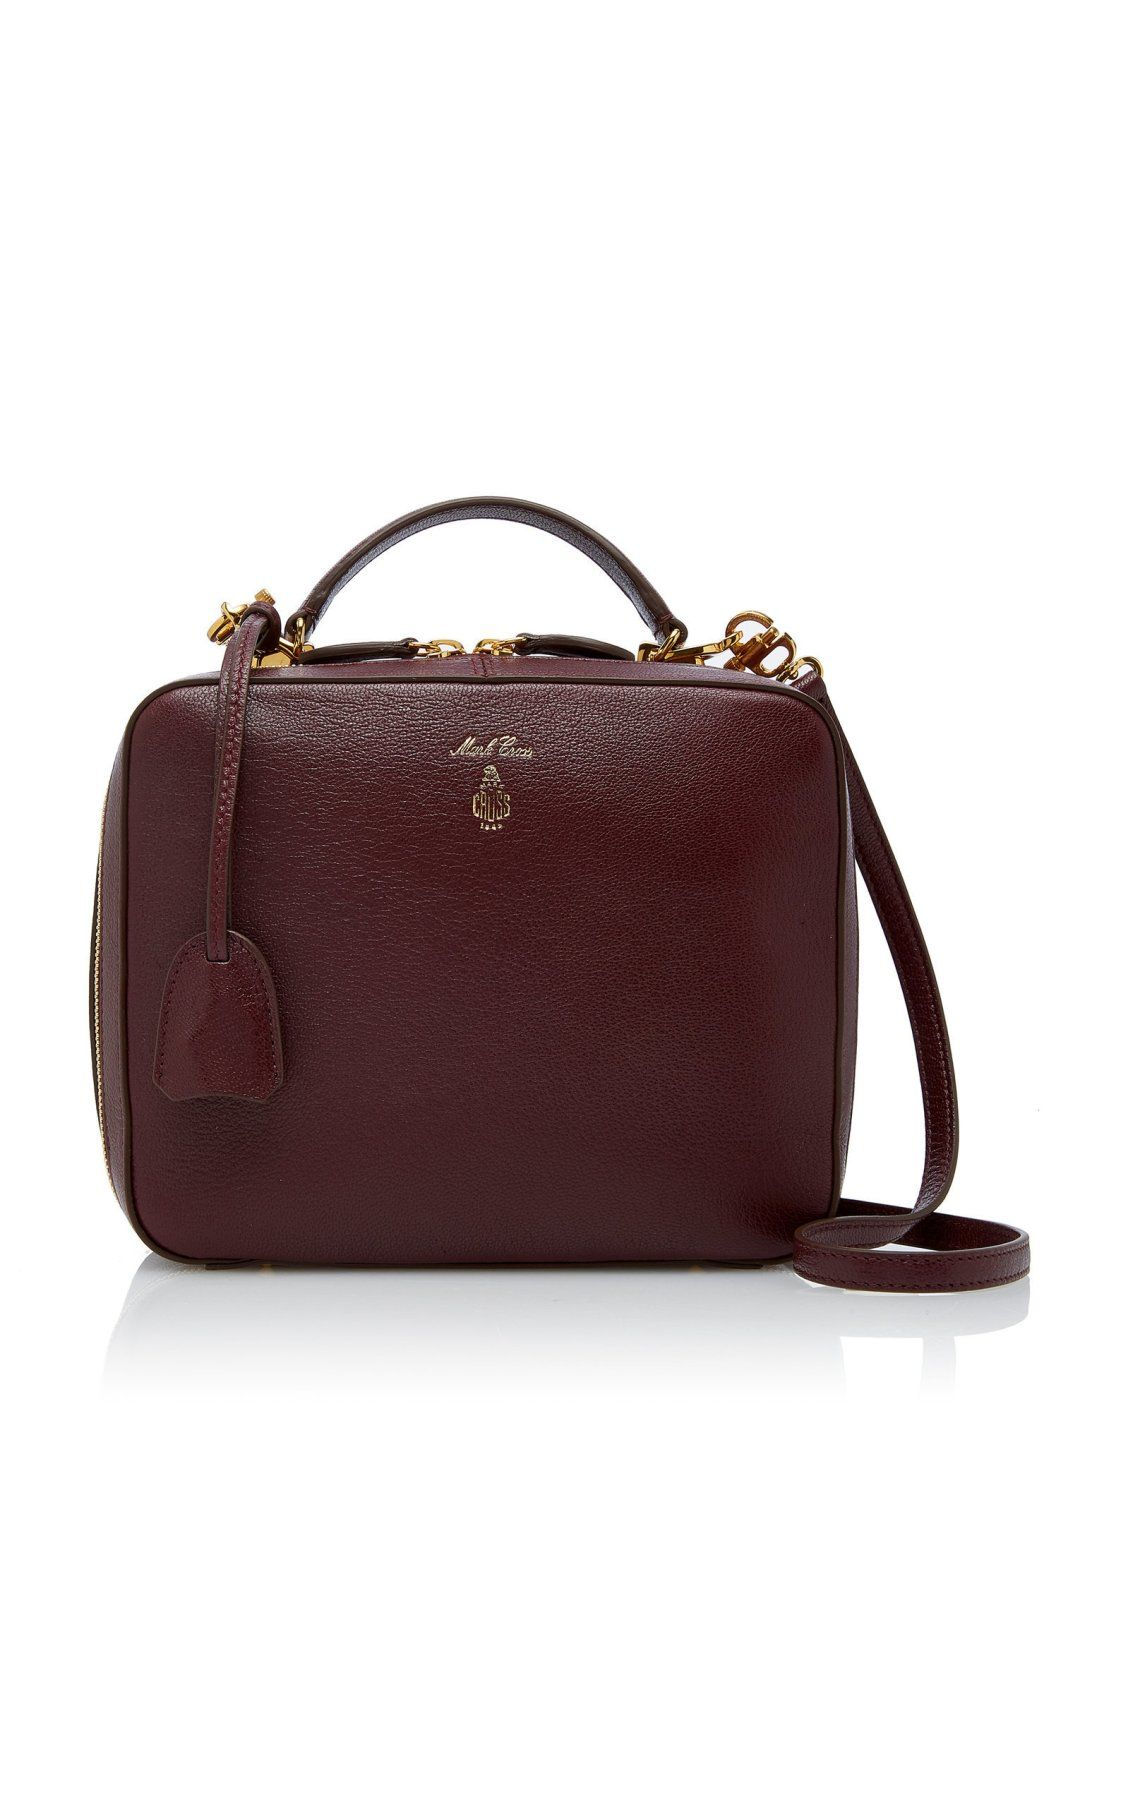 ea73a1405c67 Laura Leather Bag by Mark Cross PF19